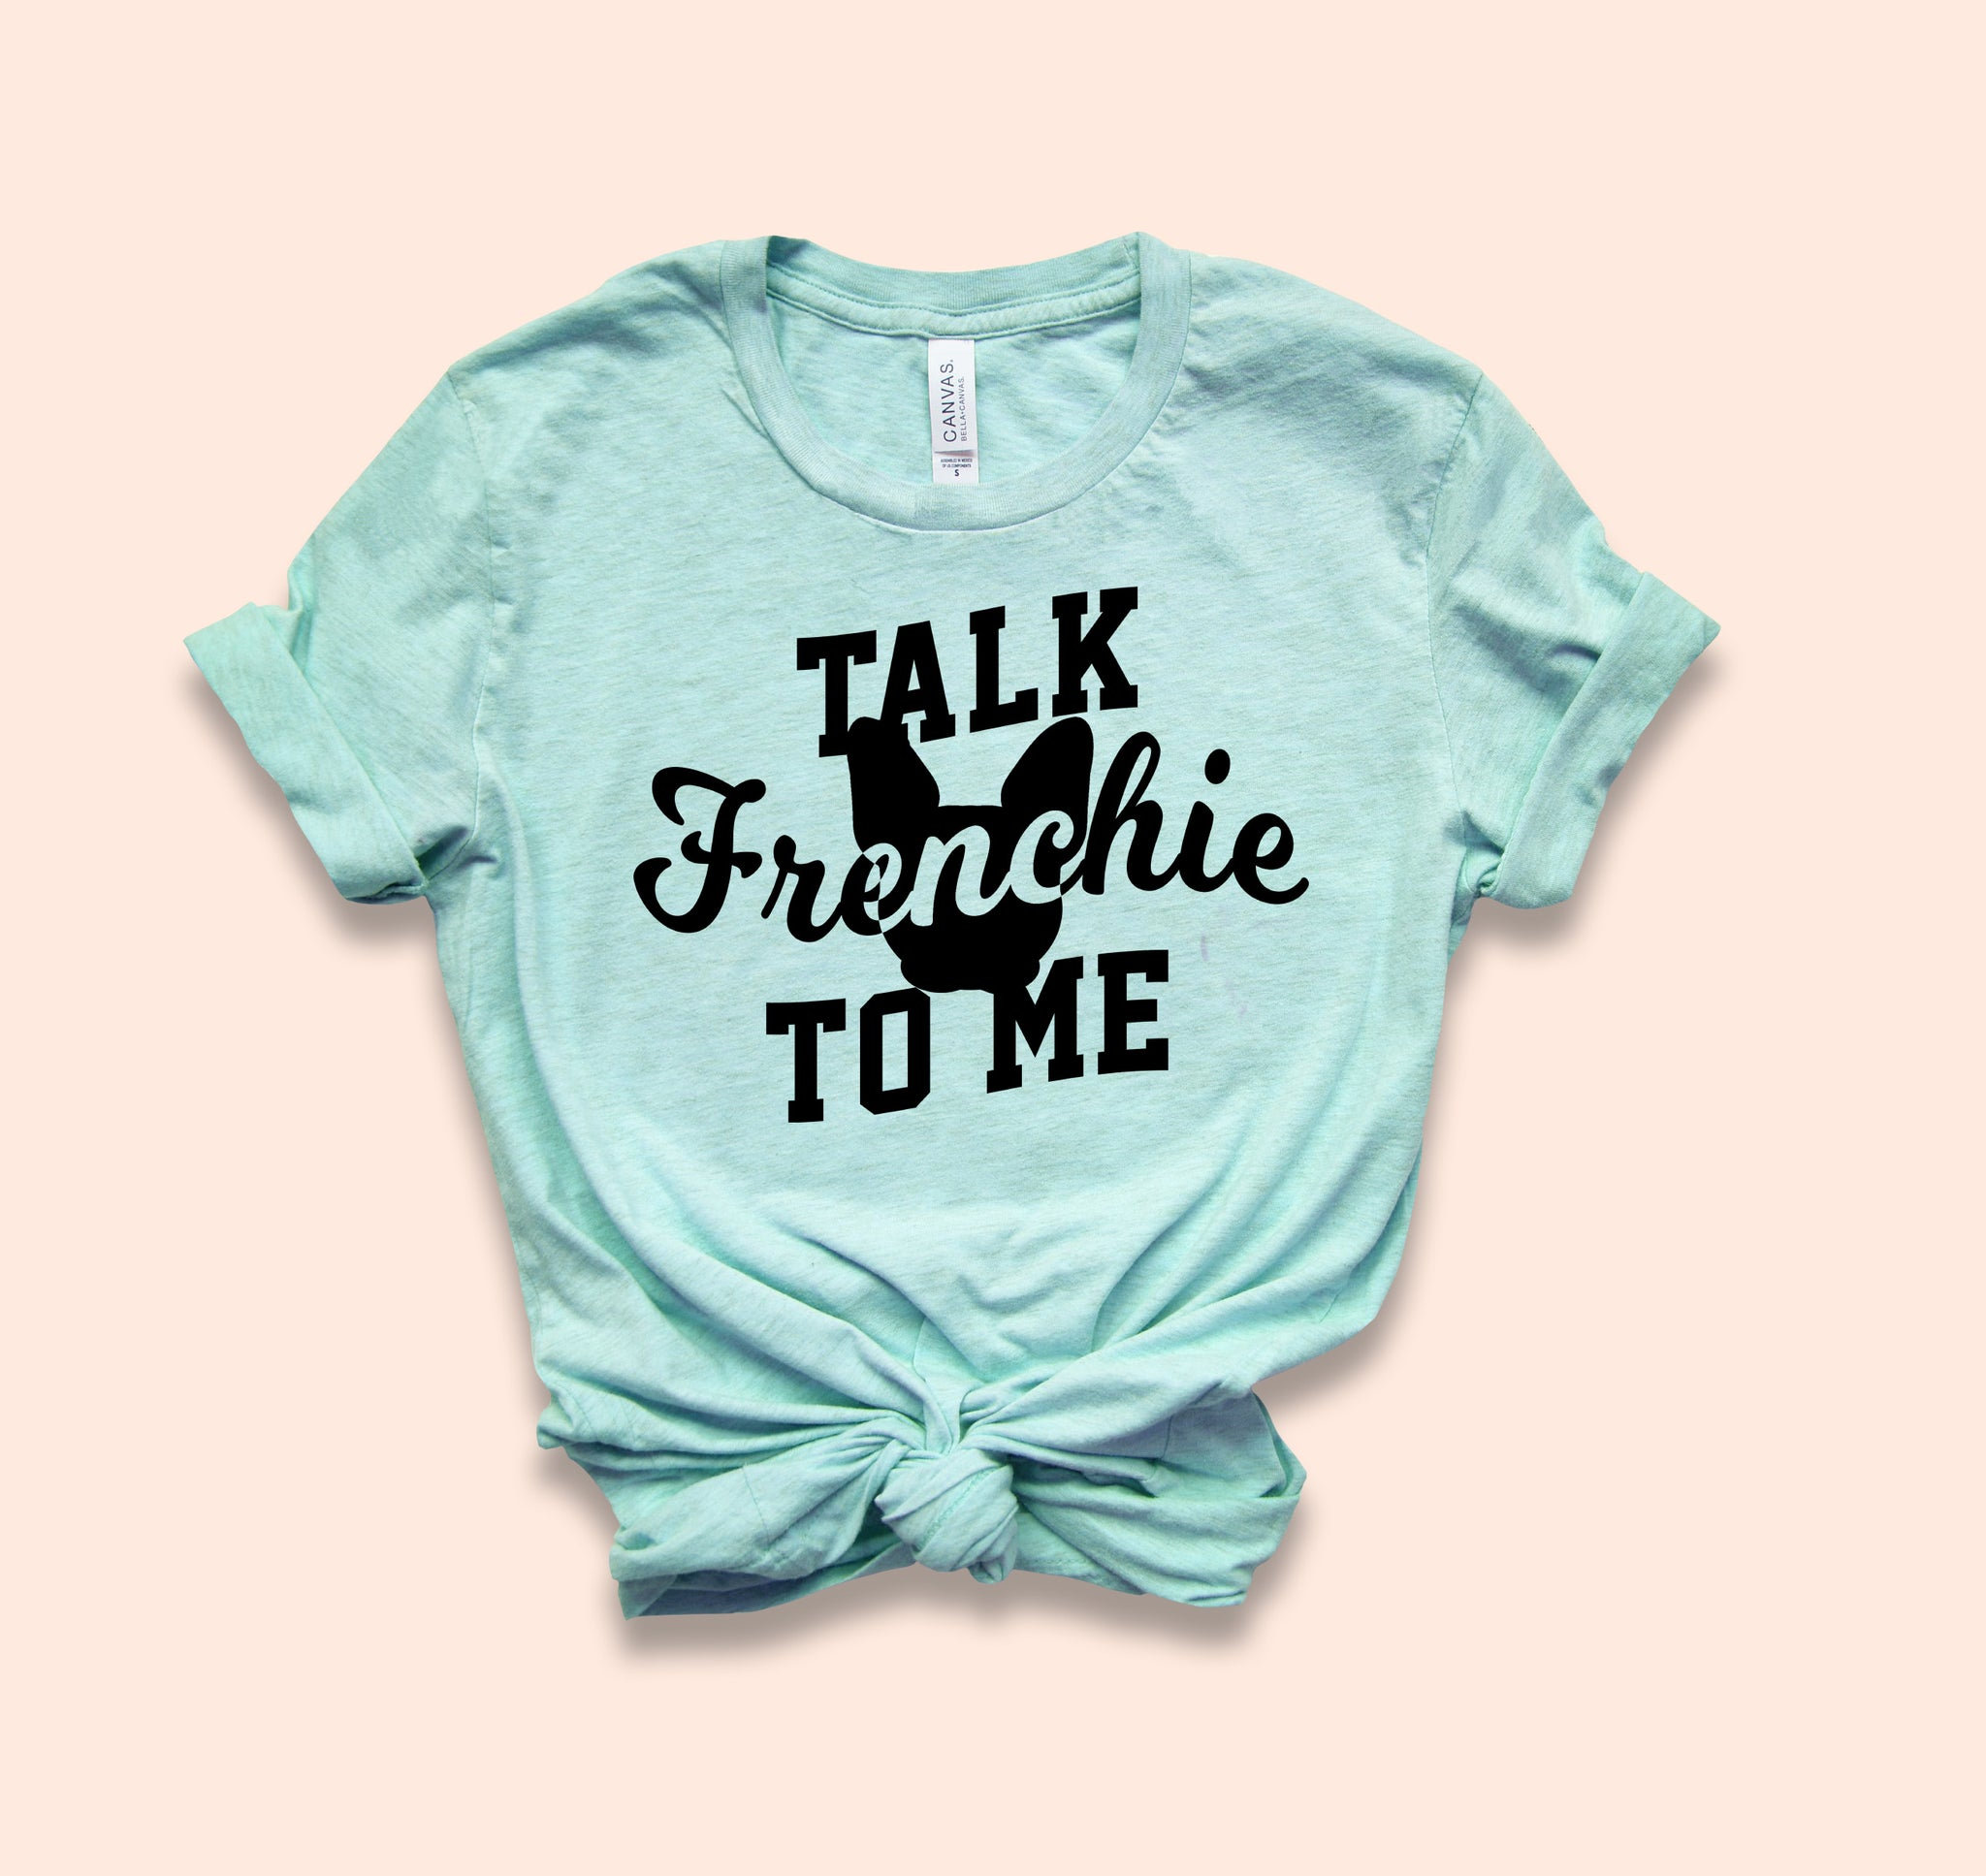 Talk Frenchie To Me Shirt